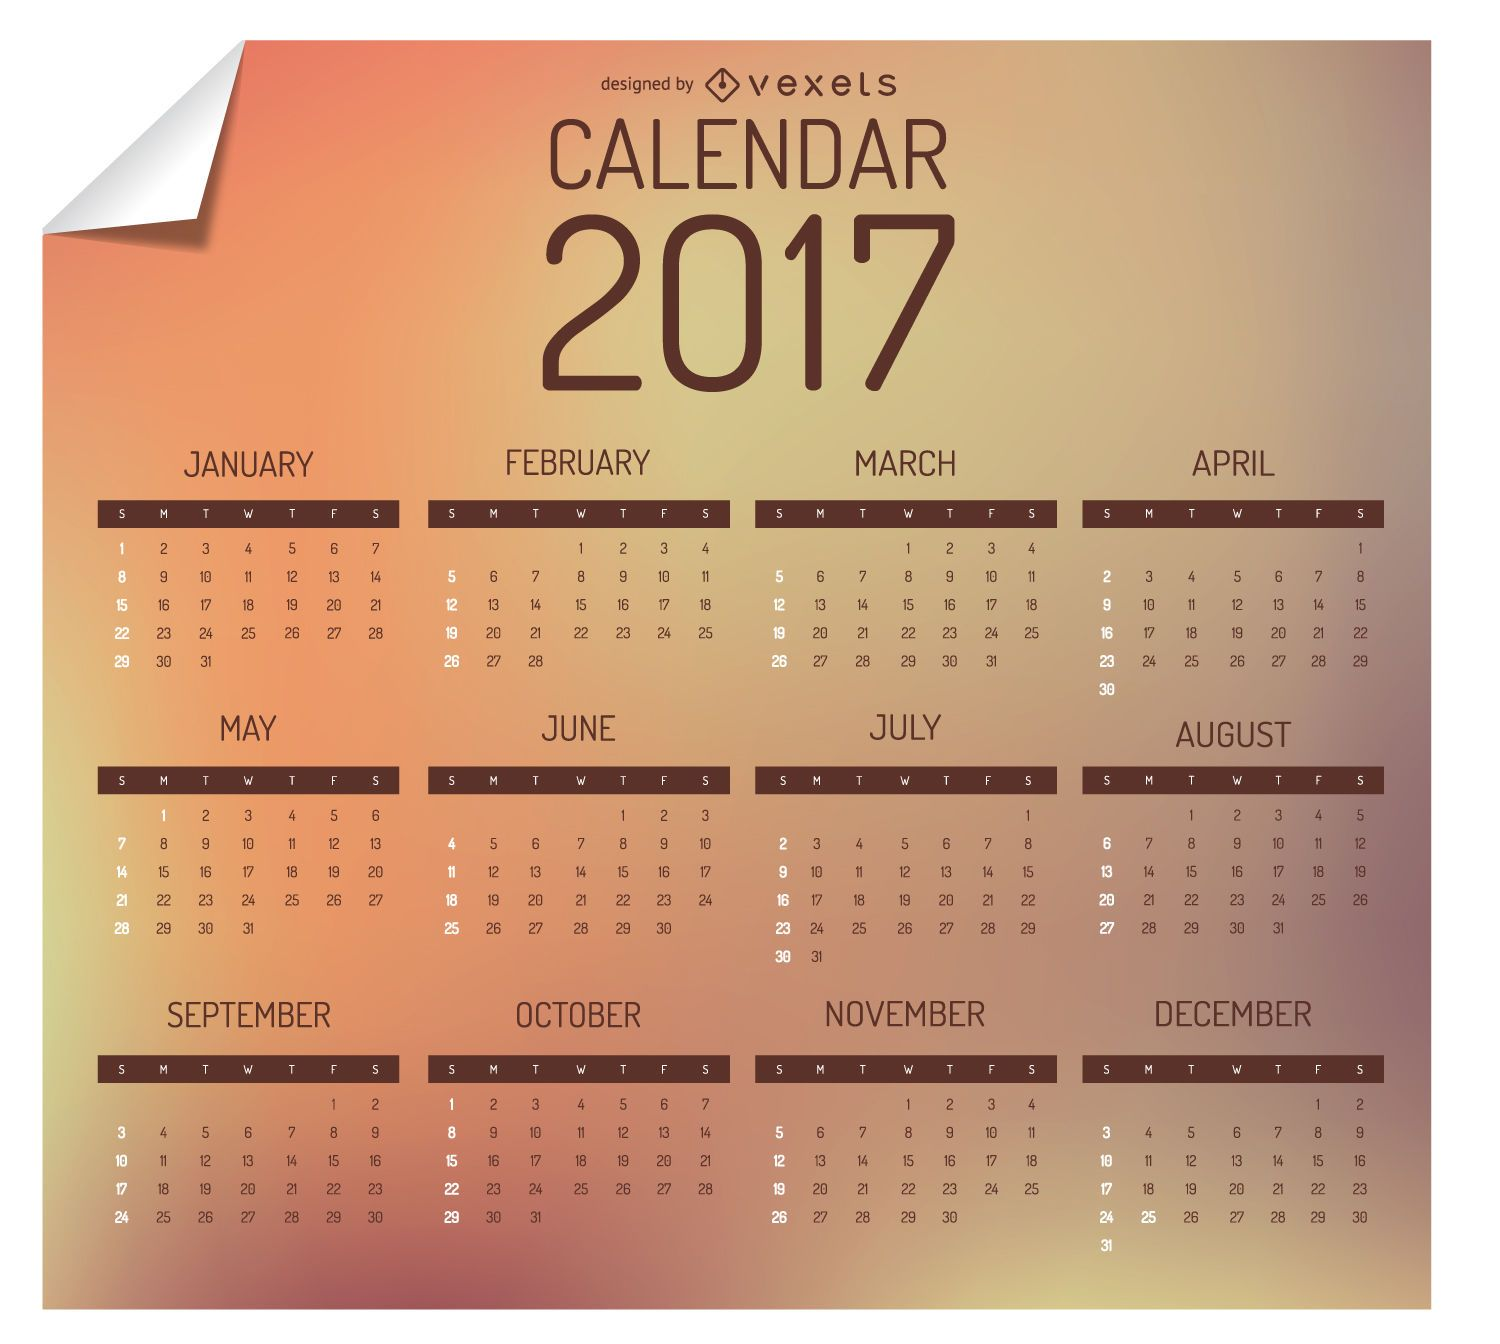 Calendar Design With Pictures : Calendar design vector download